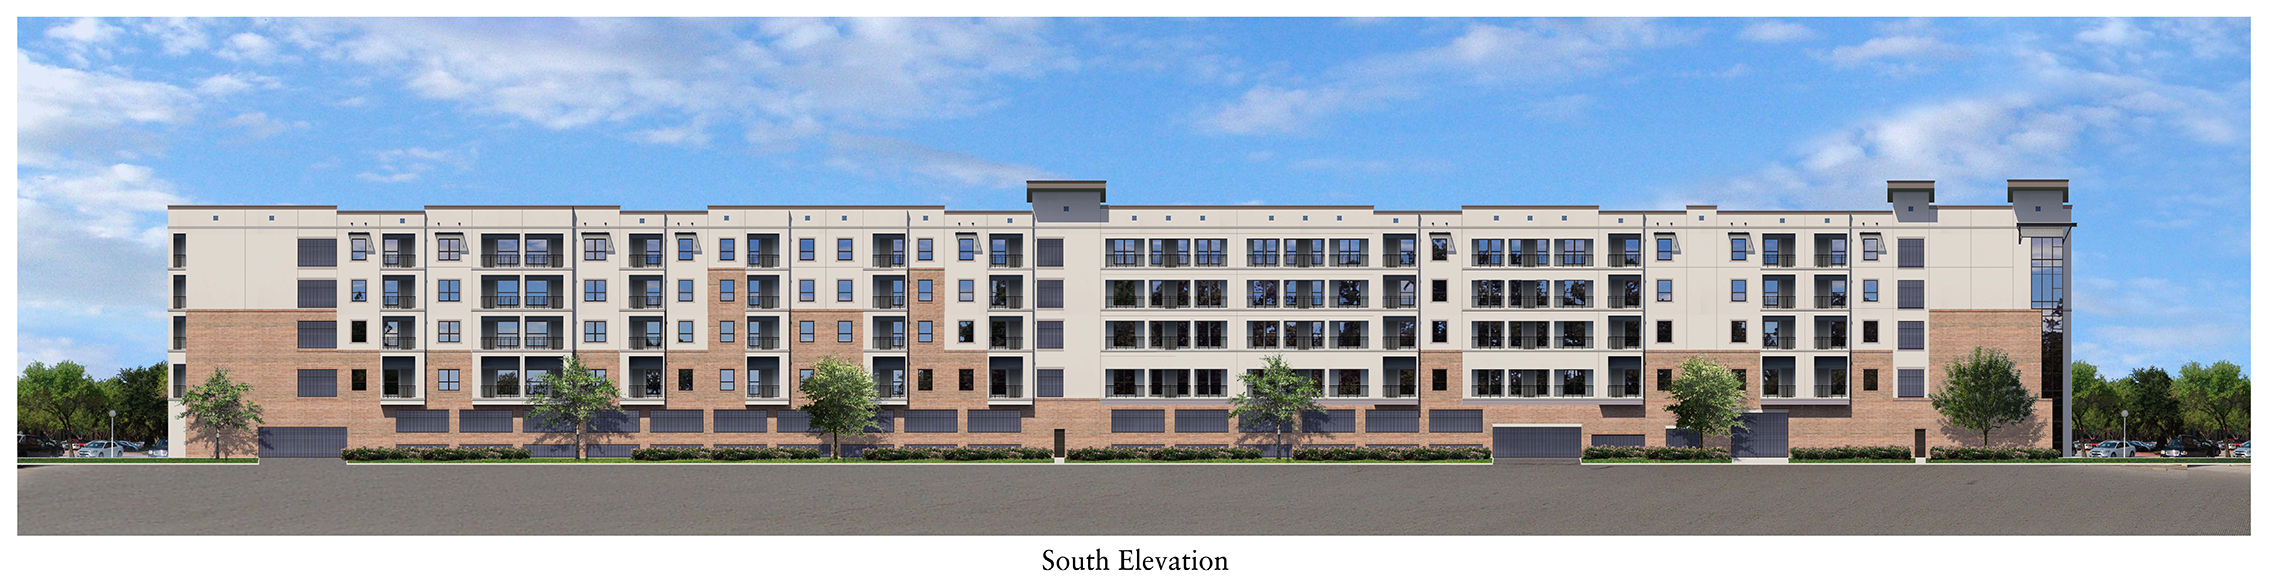 2640_FOUNTAINVIEW_RENDERINGS_SOUTH ELEVATOIN